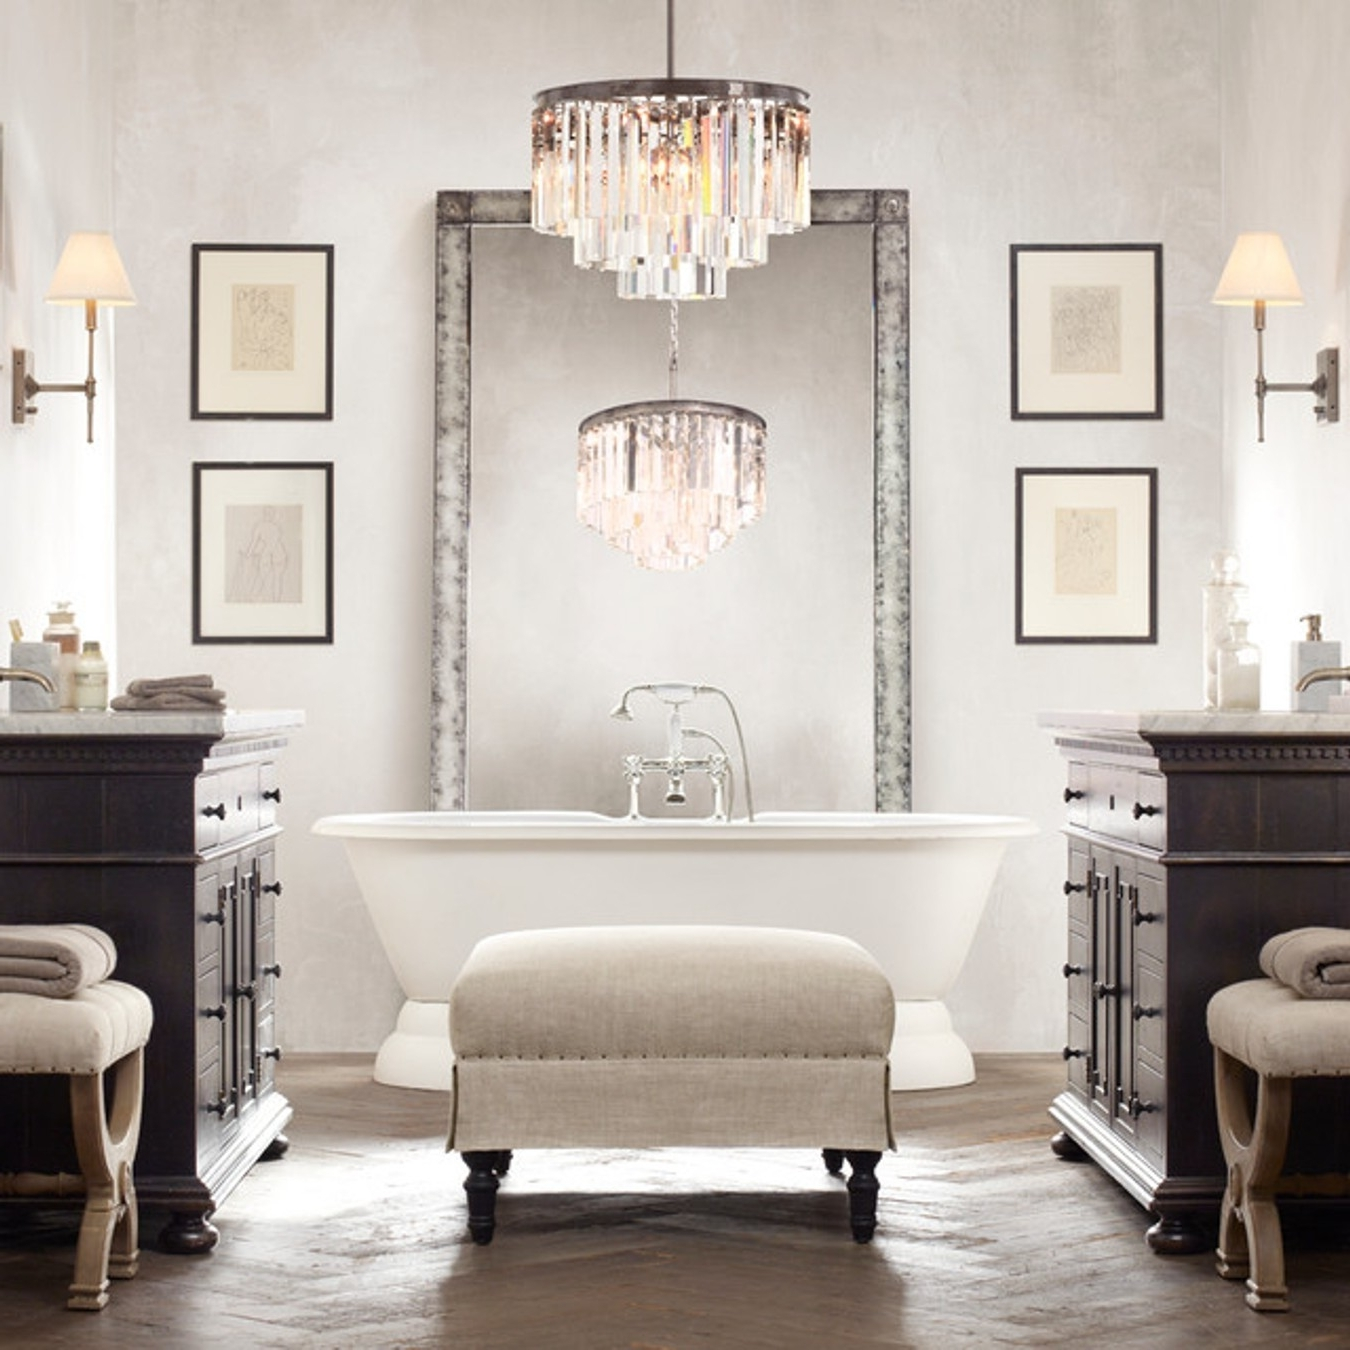 Chandelier In The Bathroom With 2019 Bedroom & Bathroom: Charming Bathroom Chandeliers For Contemporary (View 12 of 20)